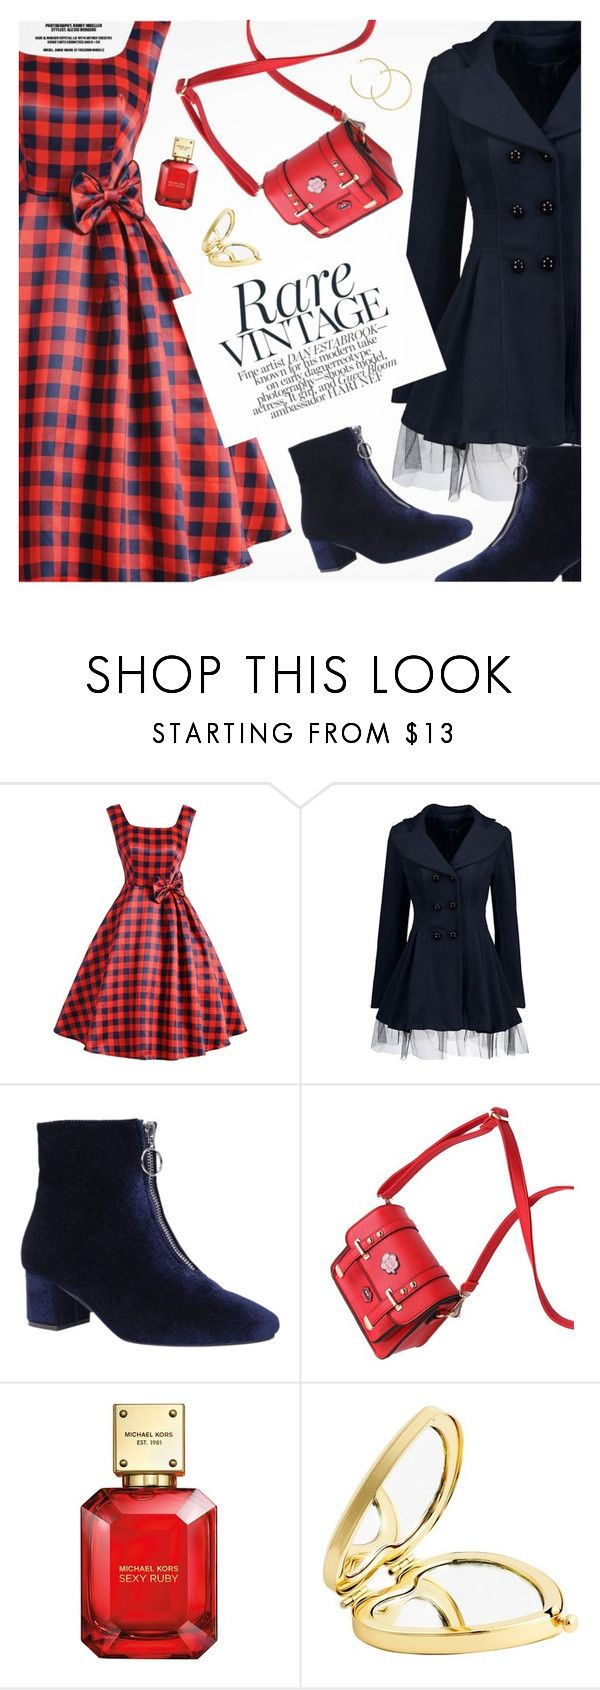 """""""Wish List"""" by pokadoll ❤ liked on Polyvore featuring Michael Kors"""